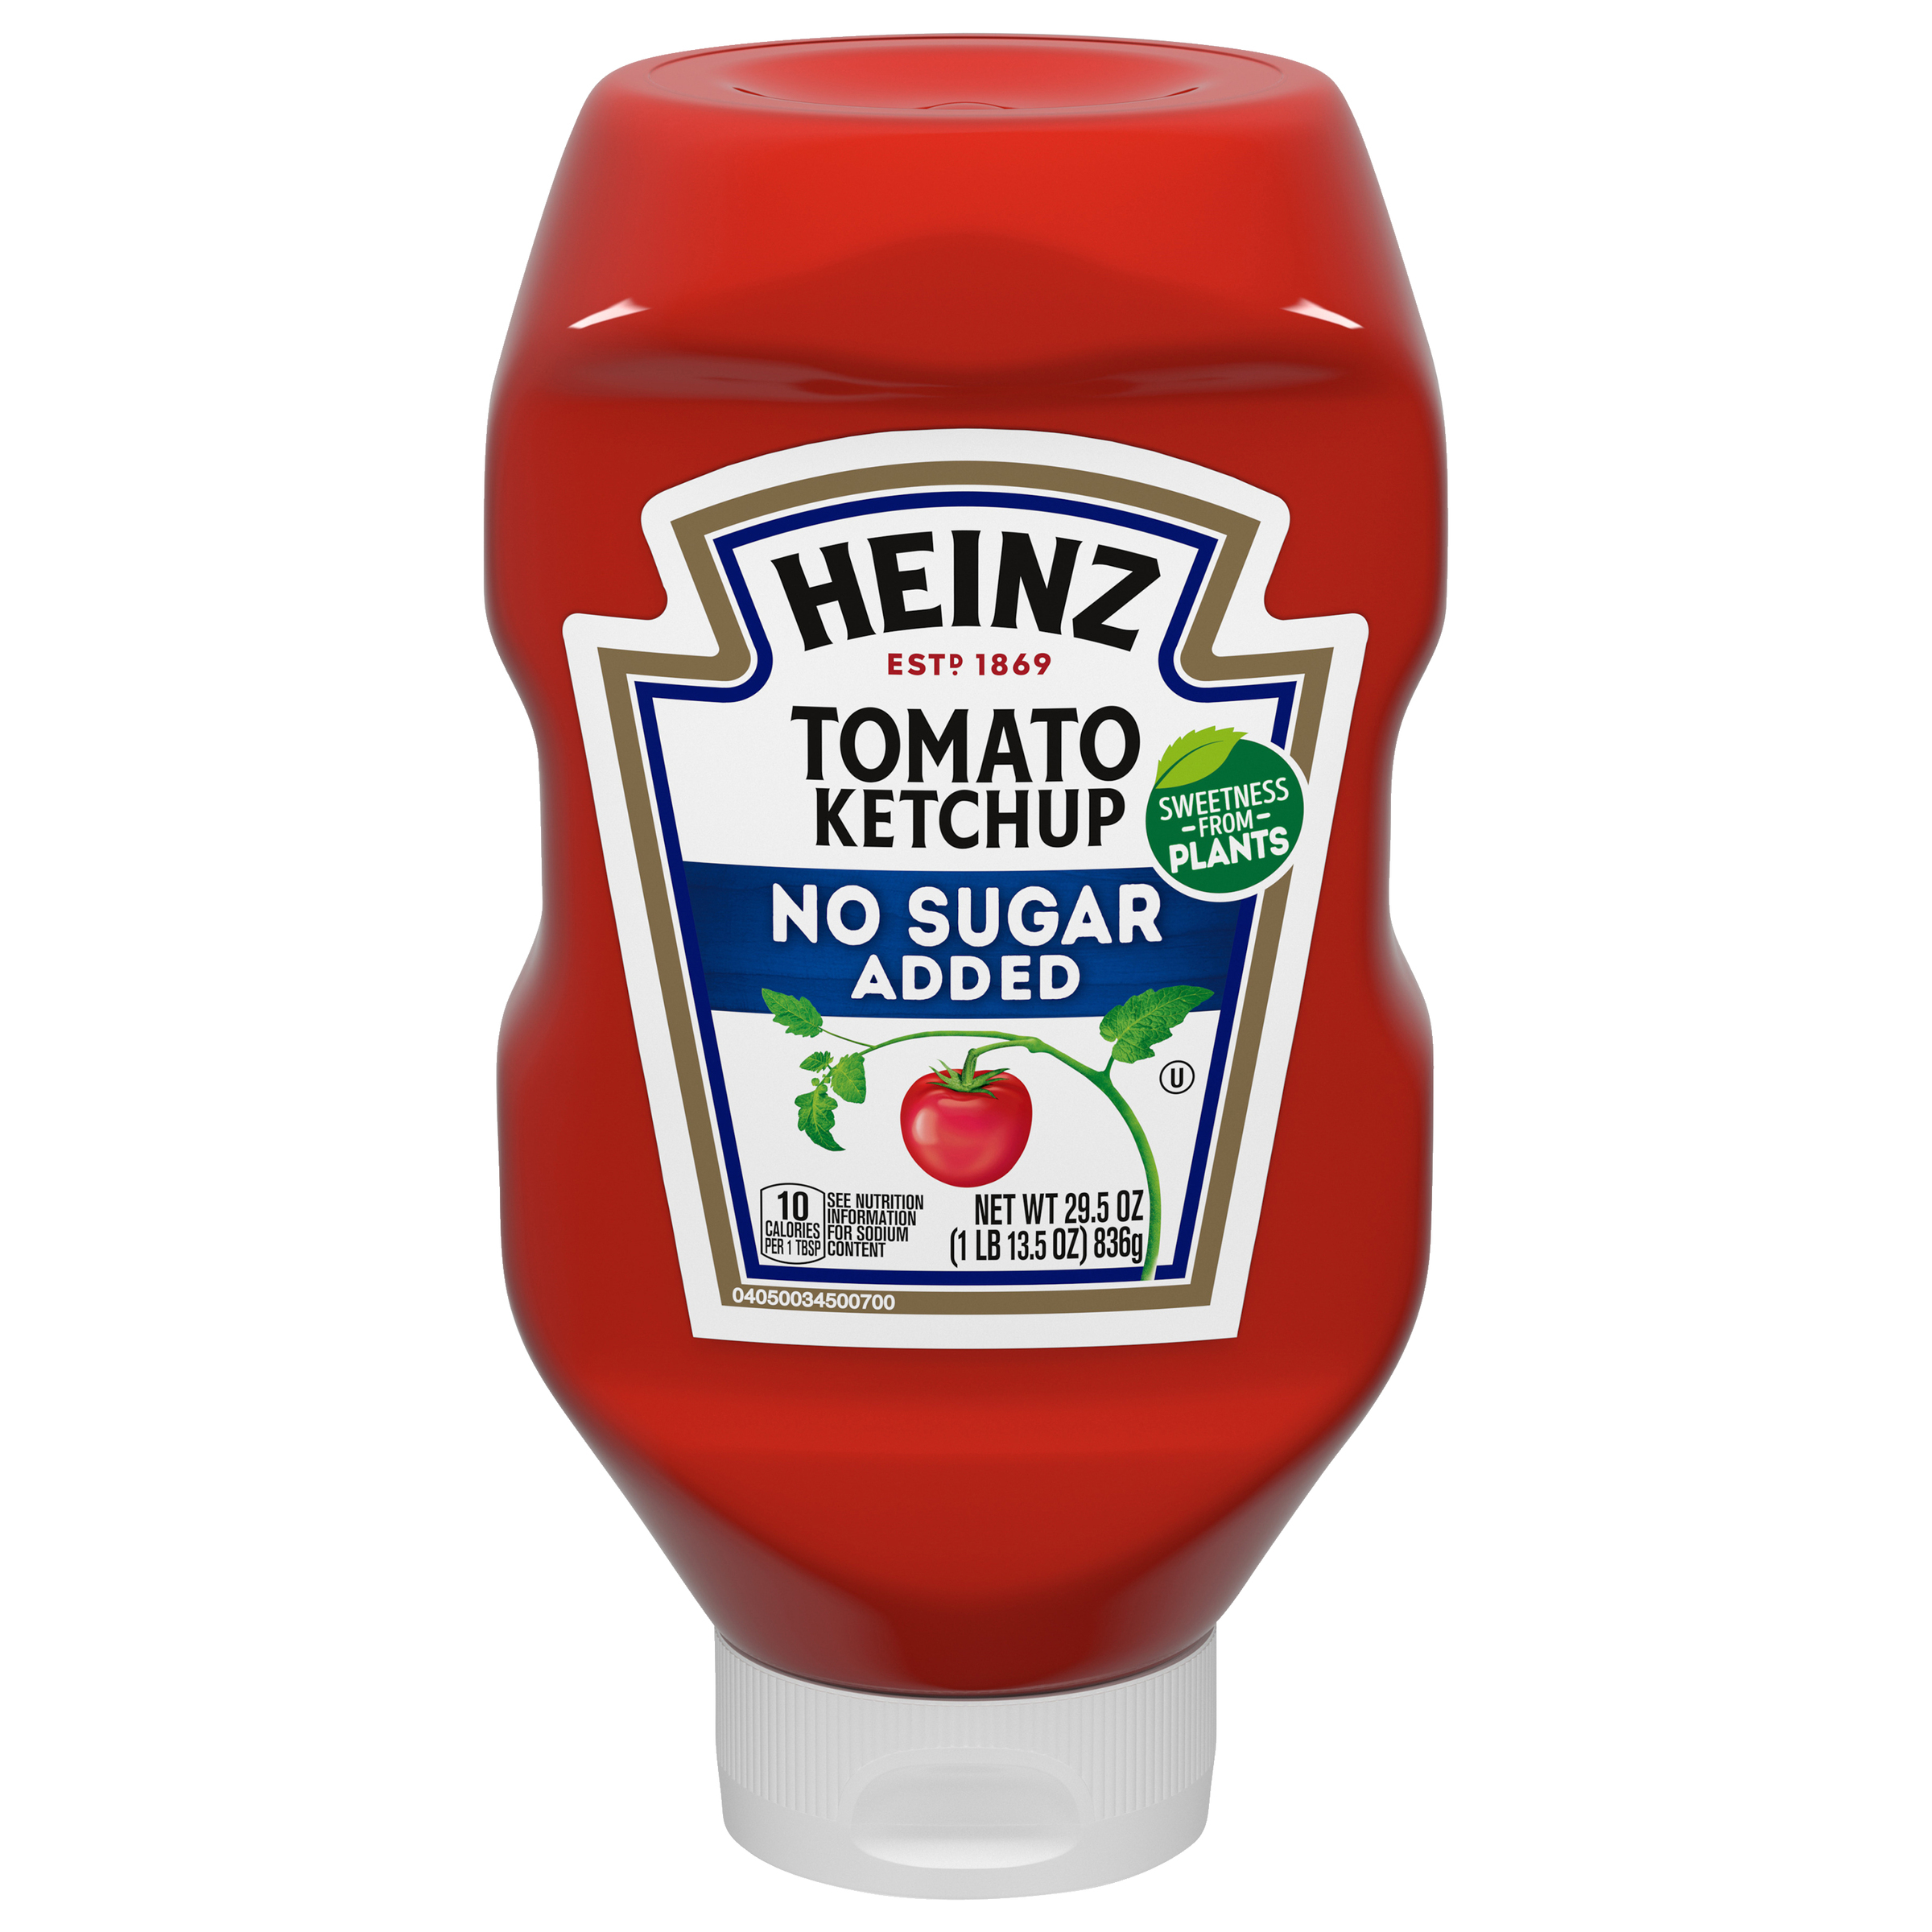 Heinz No Sugar Added Ketchup (29.5 oz.) image